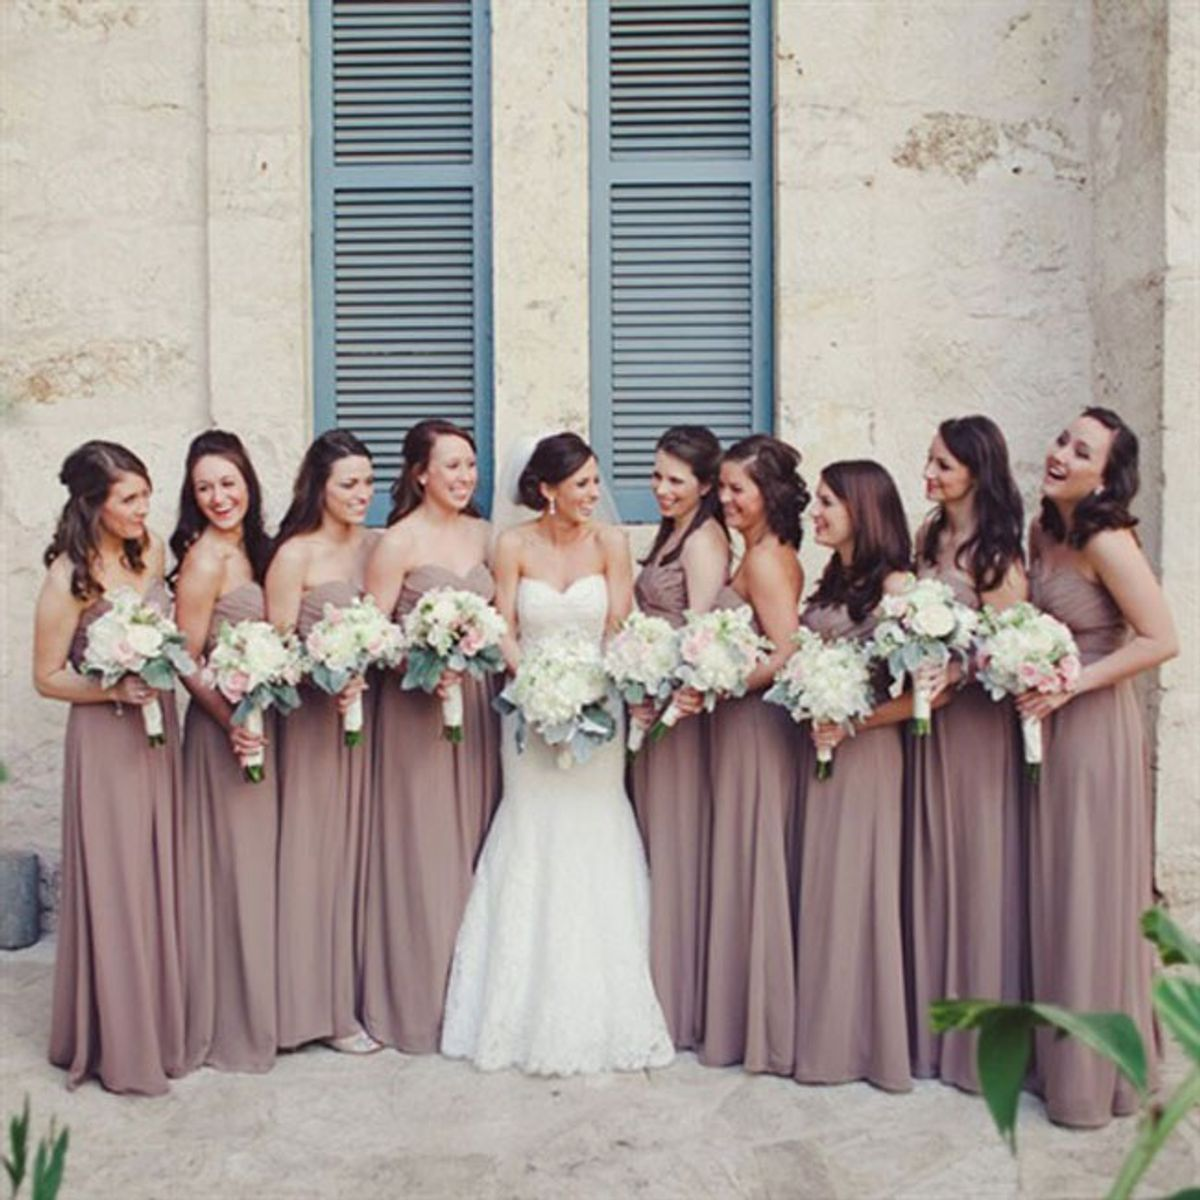 Unique Wedding Gifts For Your Bridal Party